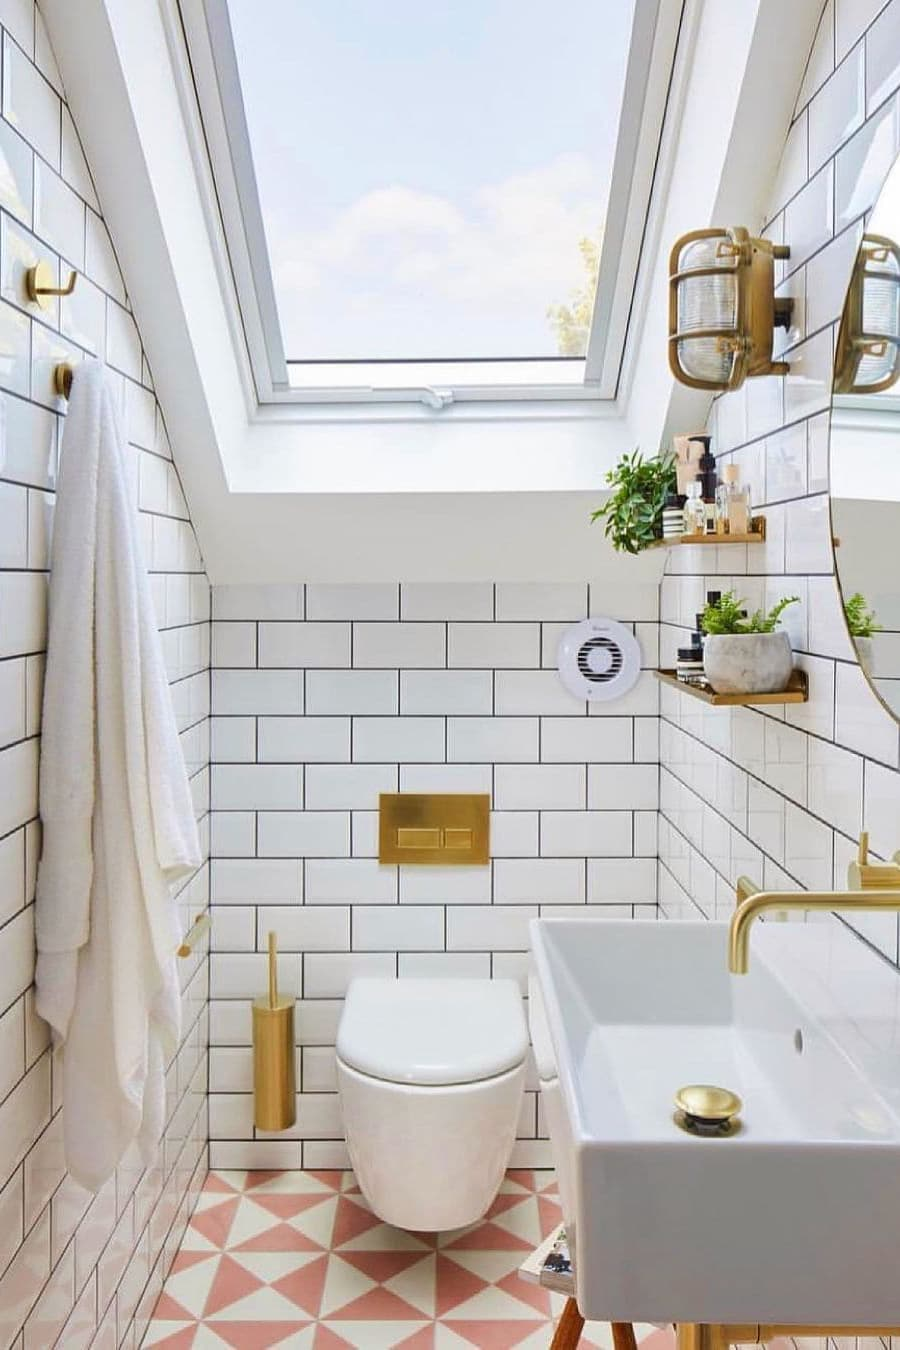 Small bathroom with golden color